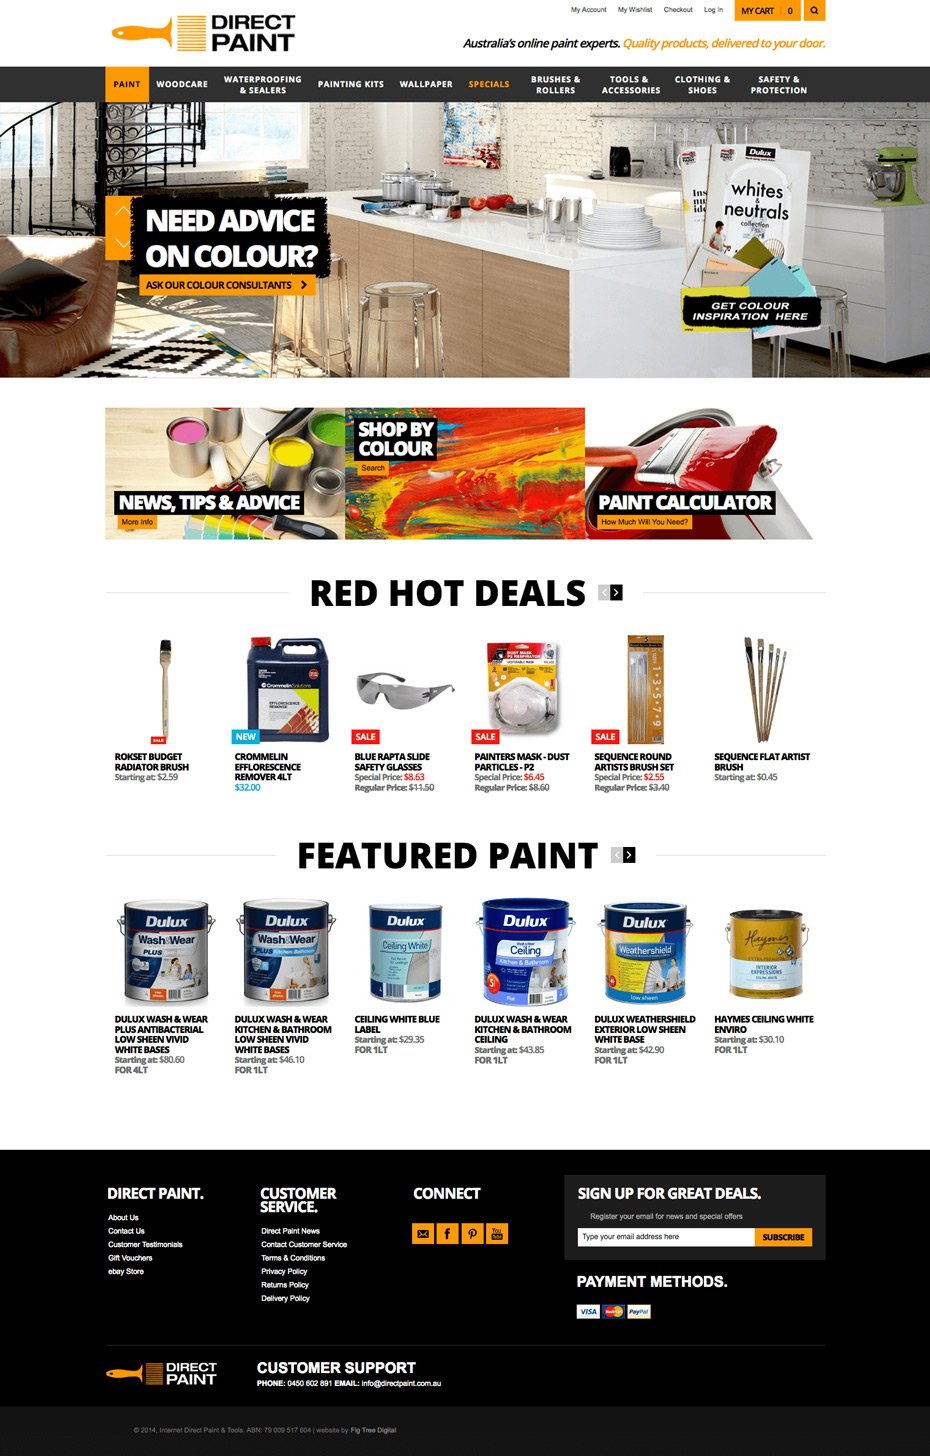 Direct Paint - eCOMMERCE website